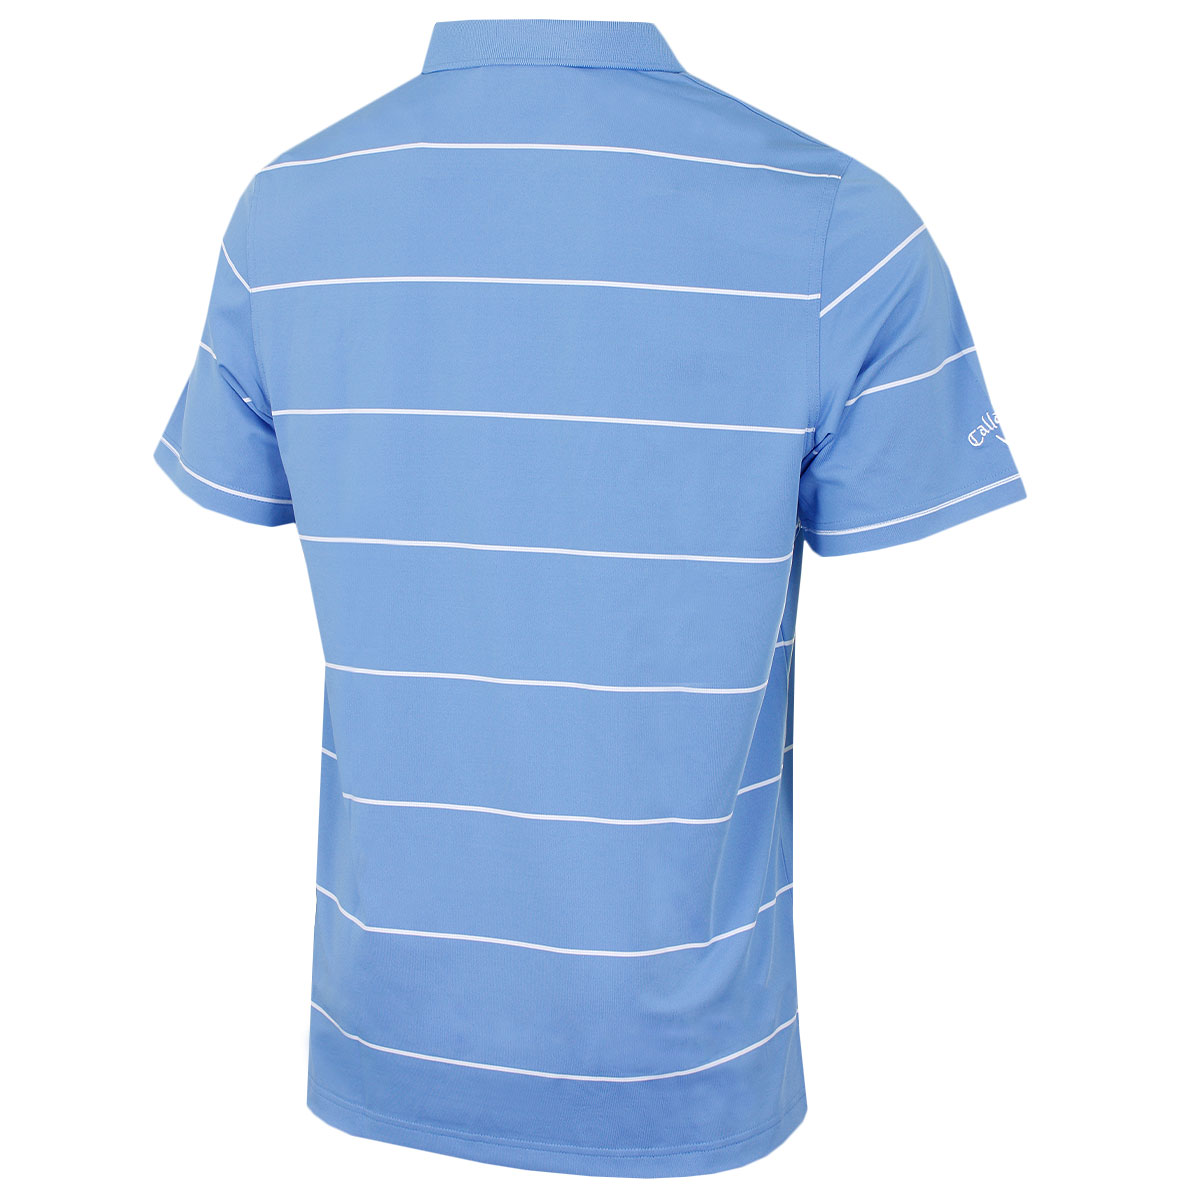 Callaway-Golf-Mens-Chev-Auto-Stripe-Polo-Shirt-Opti-Dri-Short-Sleeve-53-OFF-RRP thumbnail 13